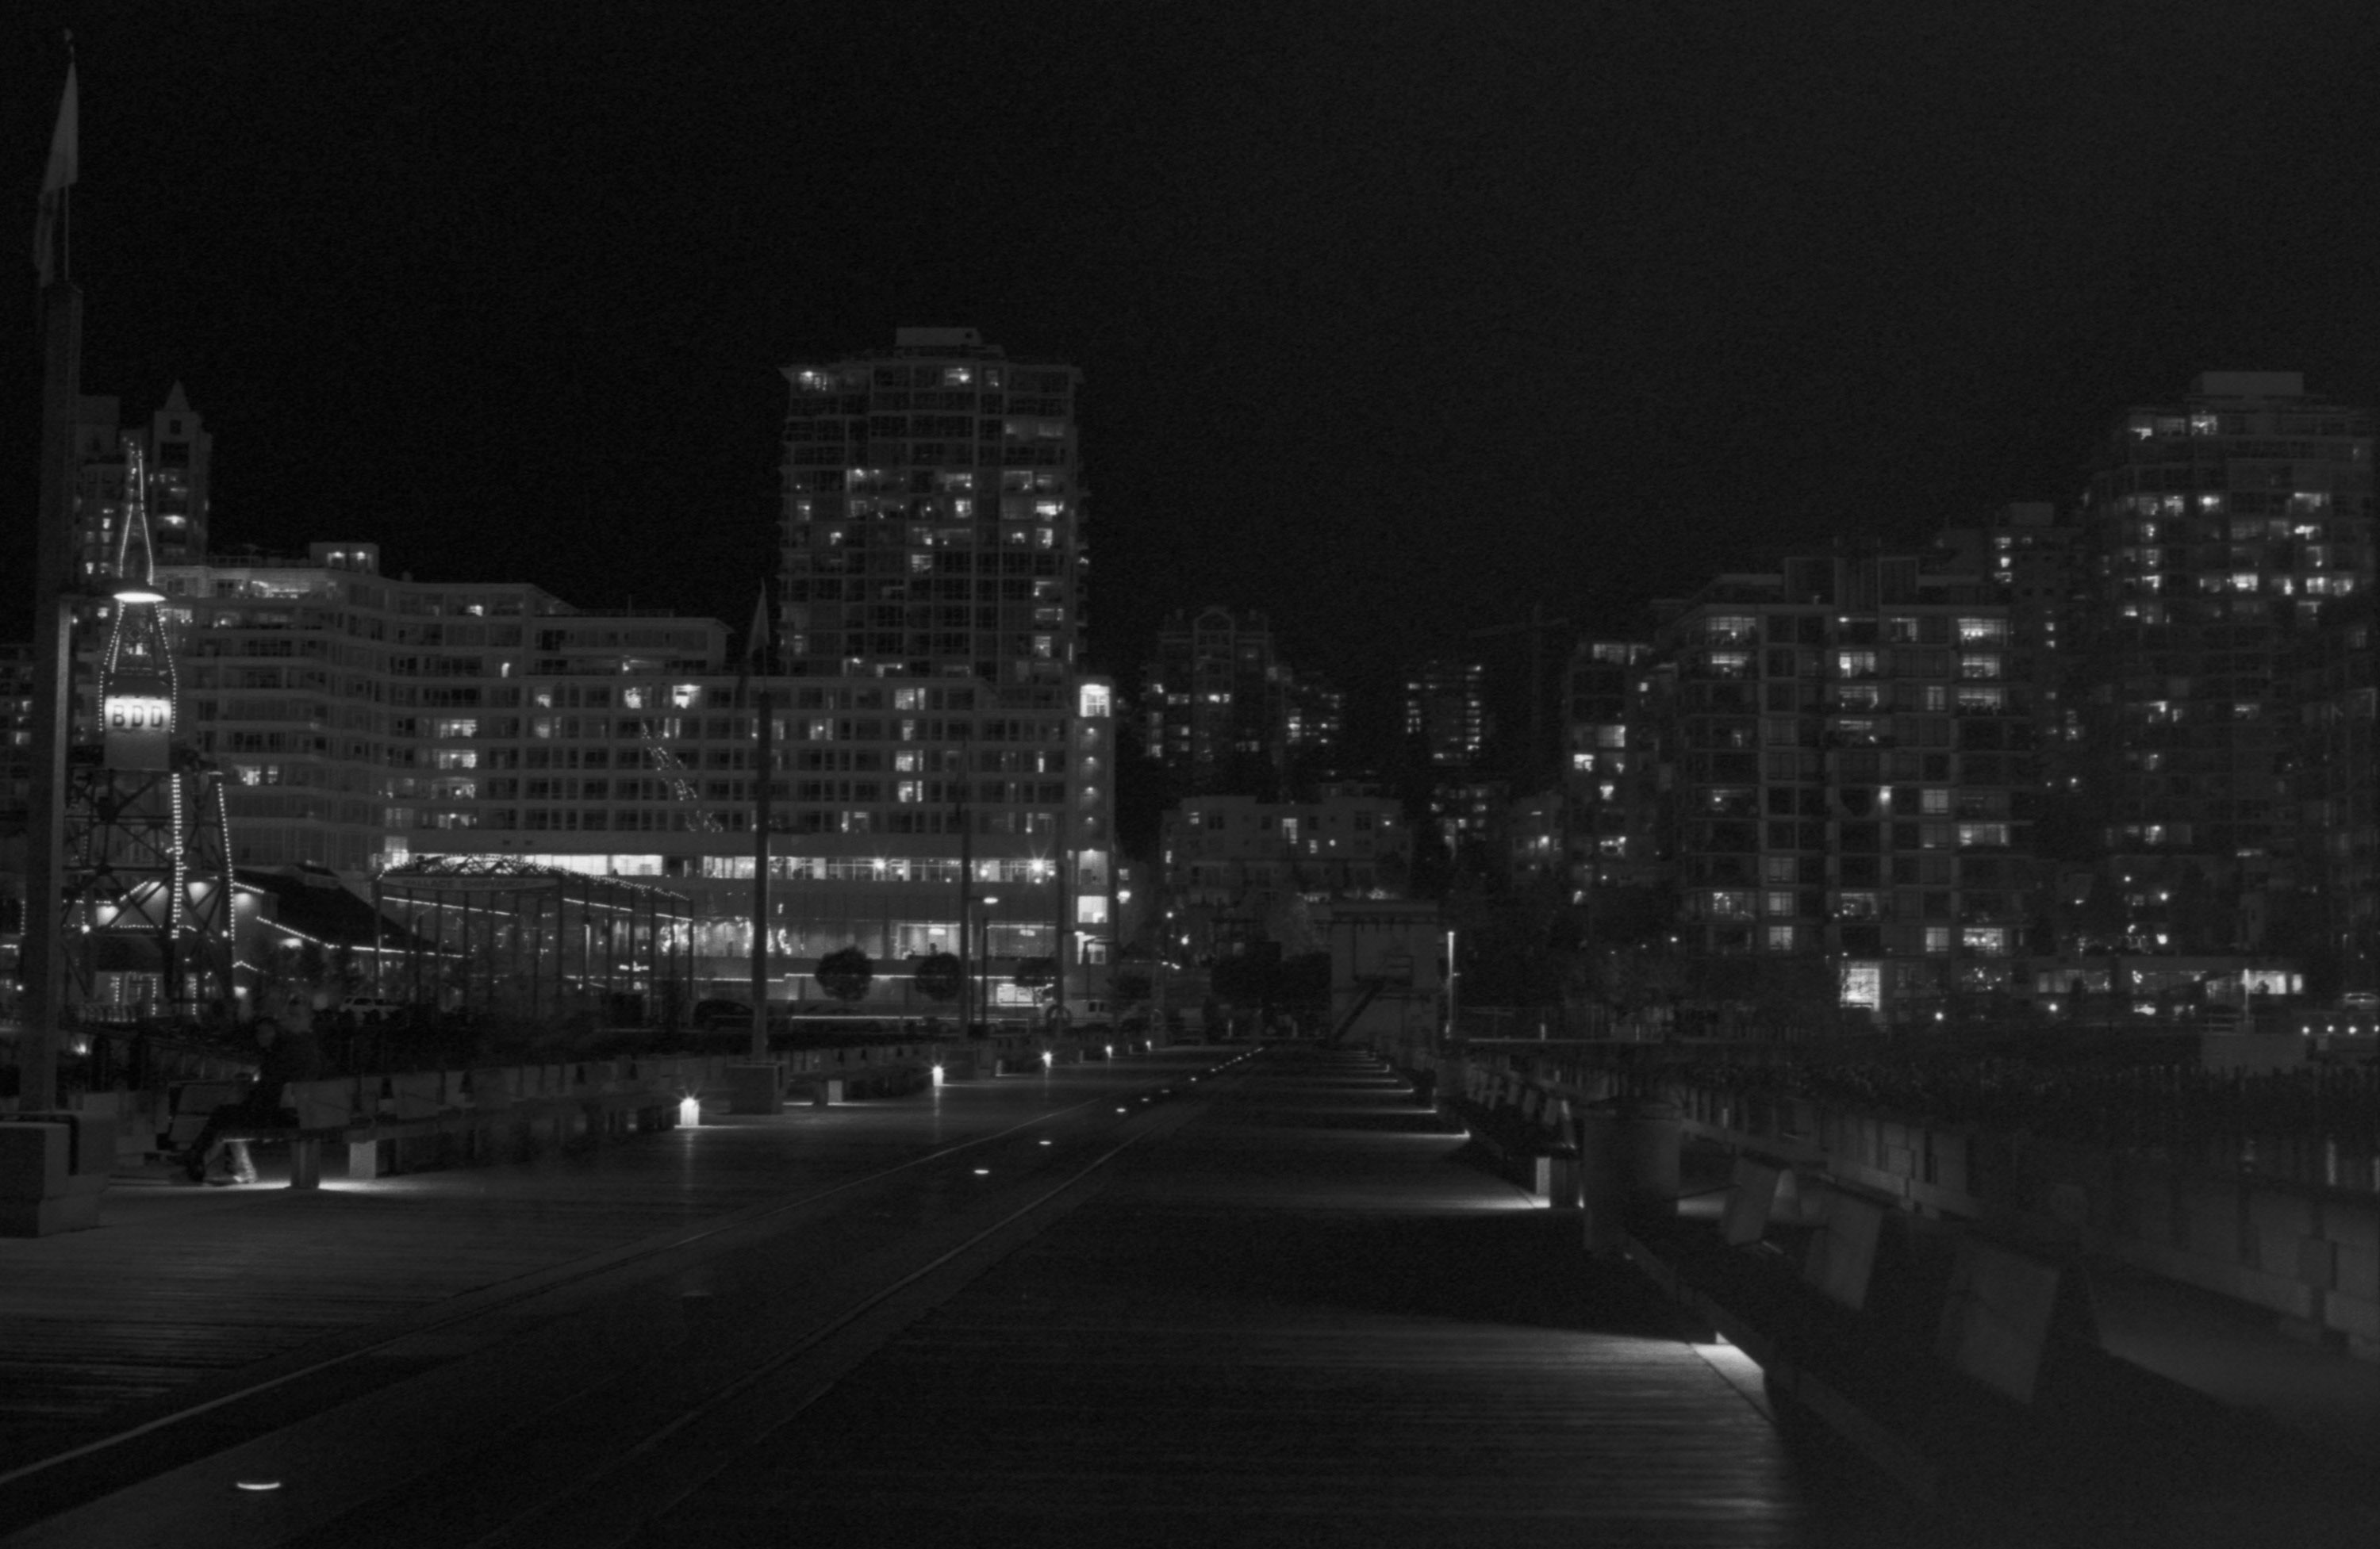 Lonsdale quay apartments night photo